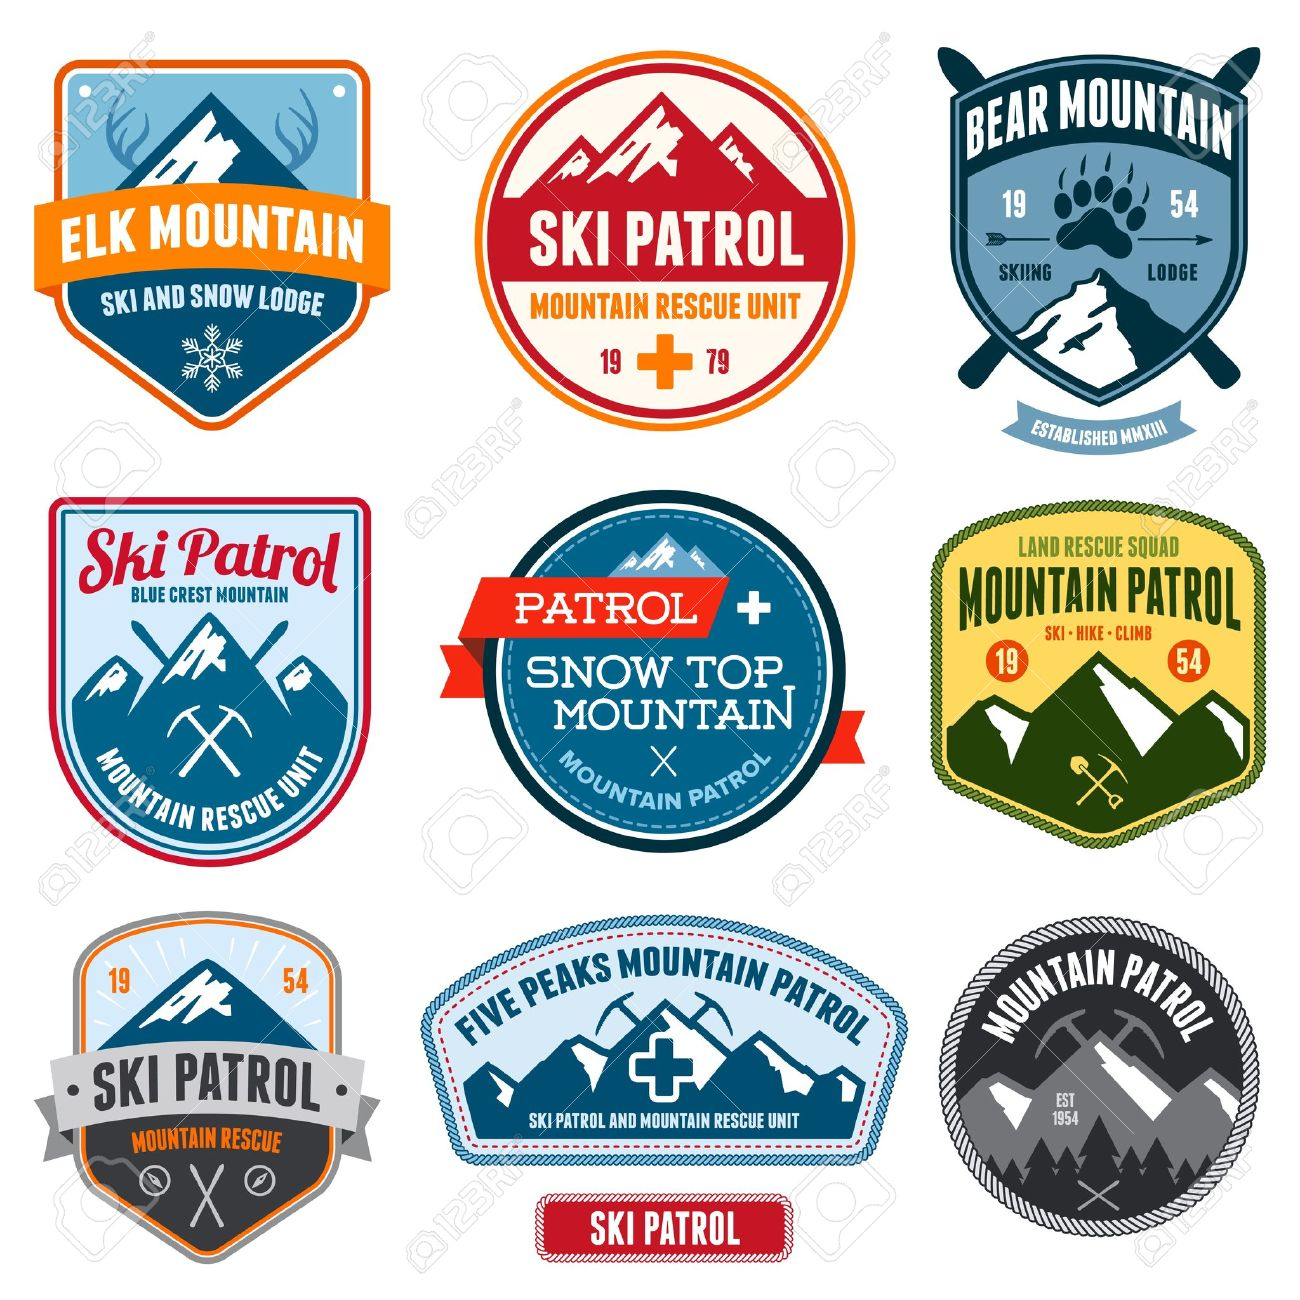 Set of ski patrol mountain badges and patches - 17766663